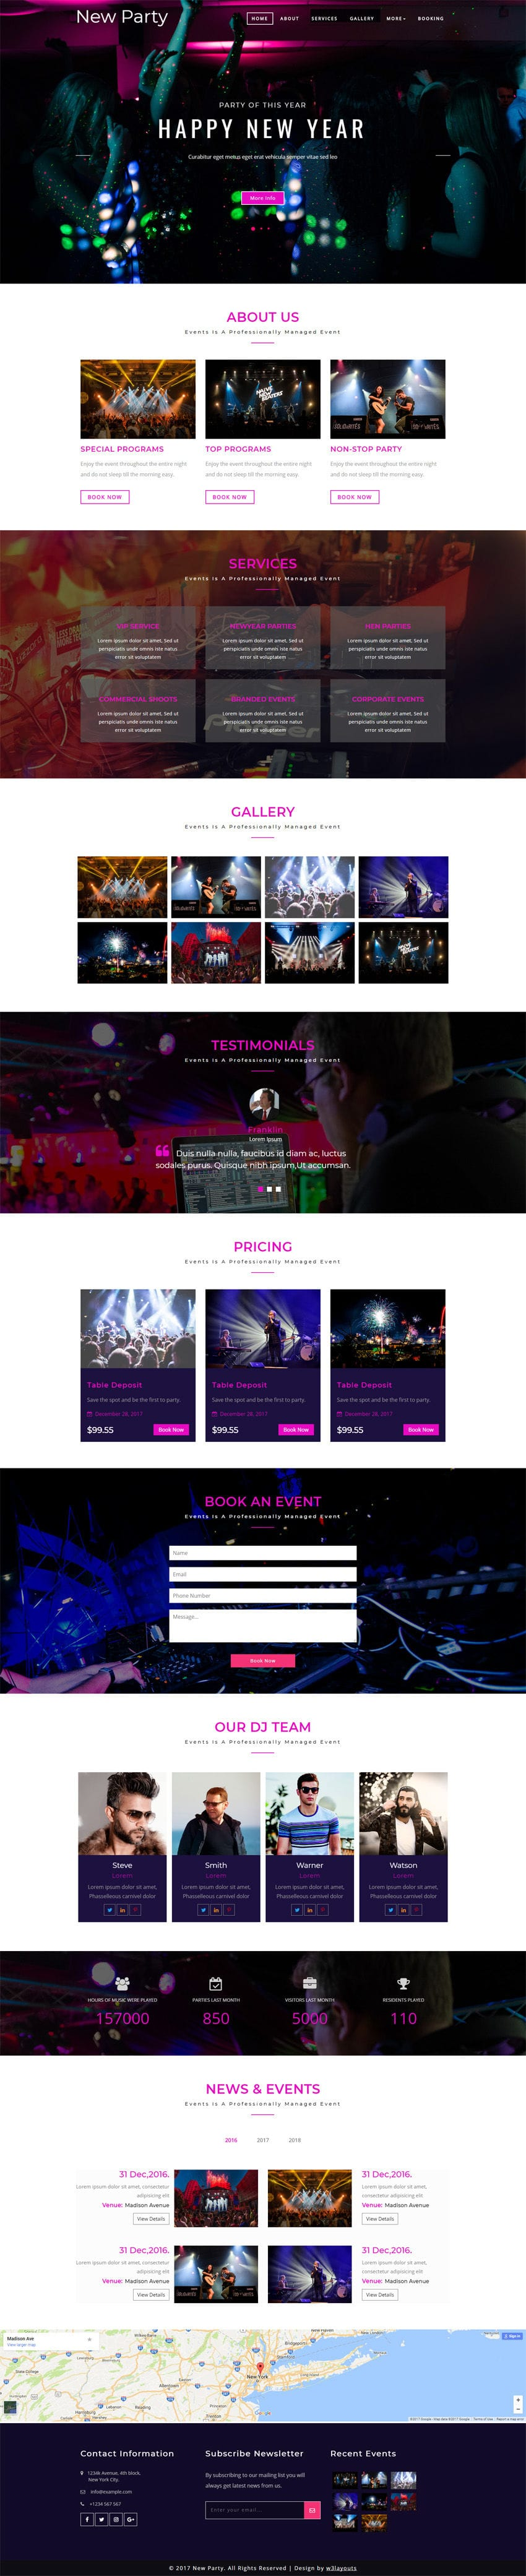 New Party Entertainment Category Bootstrap Responsive Web Template